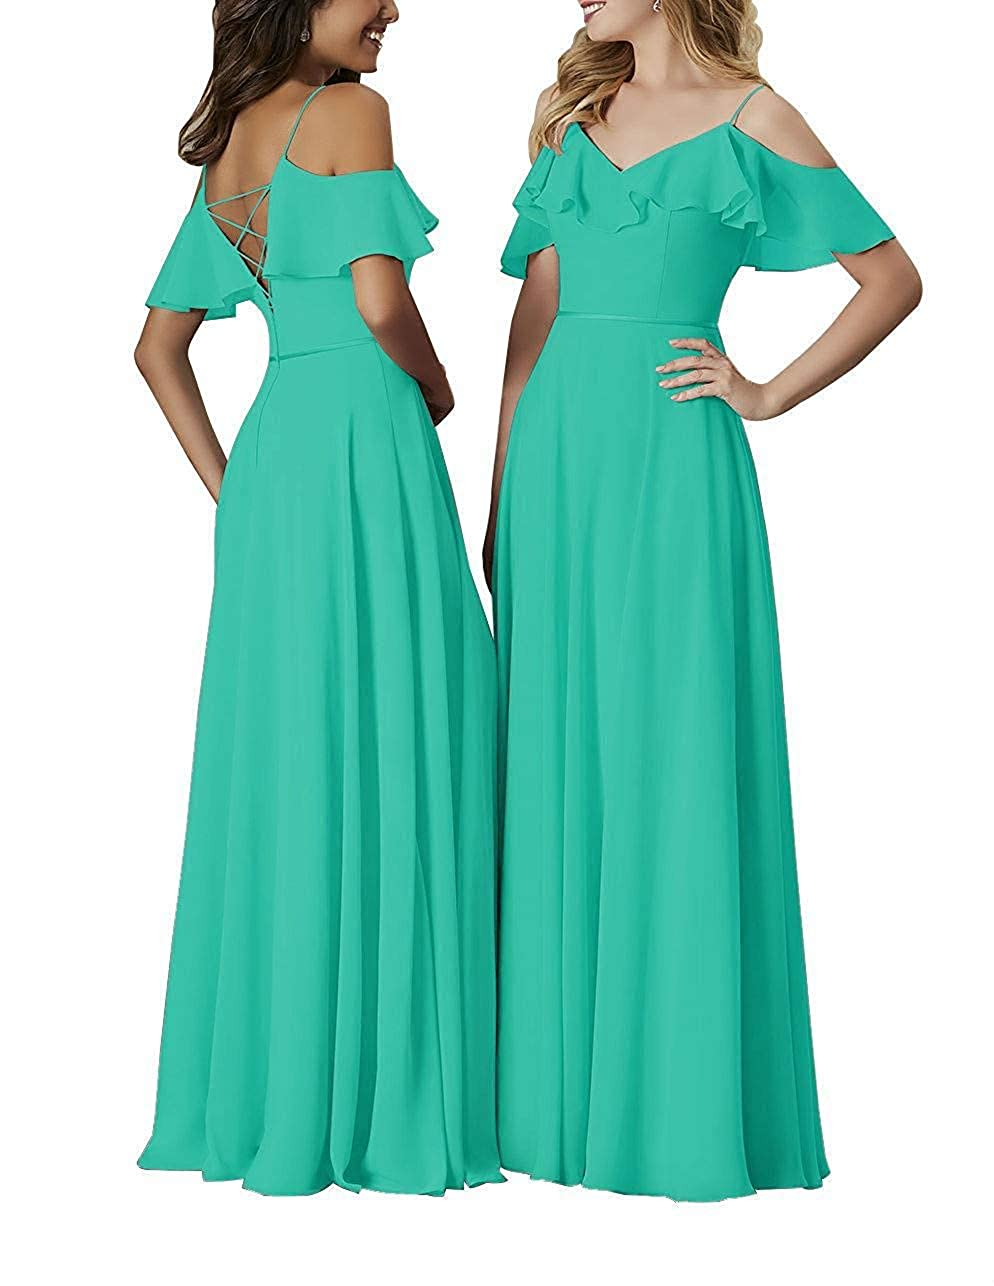 Turquoise Staypretty Bridesmaid Dresses Long Off The Shoulder Simple Formal Gowns for Women